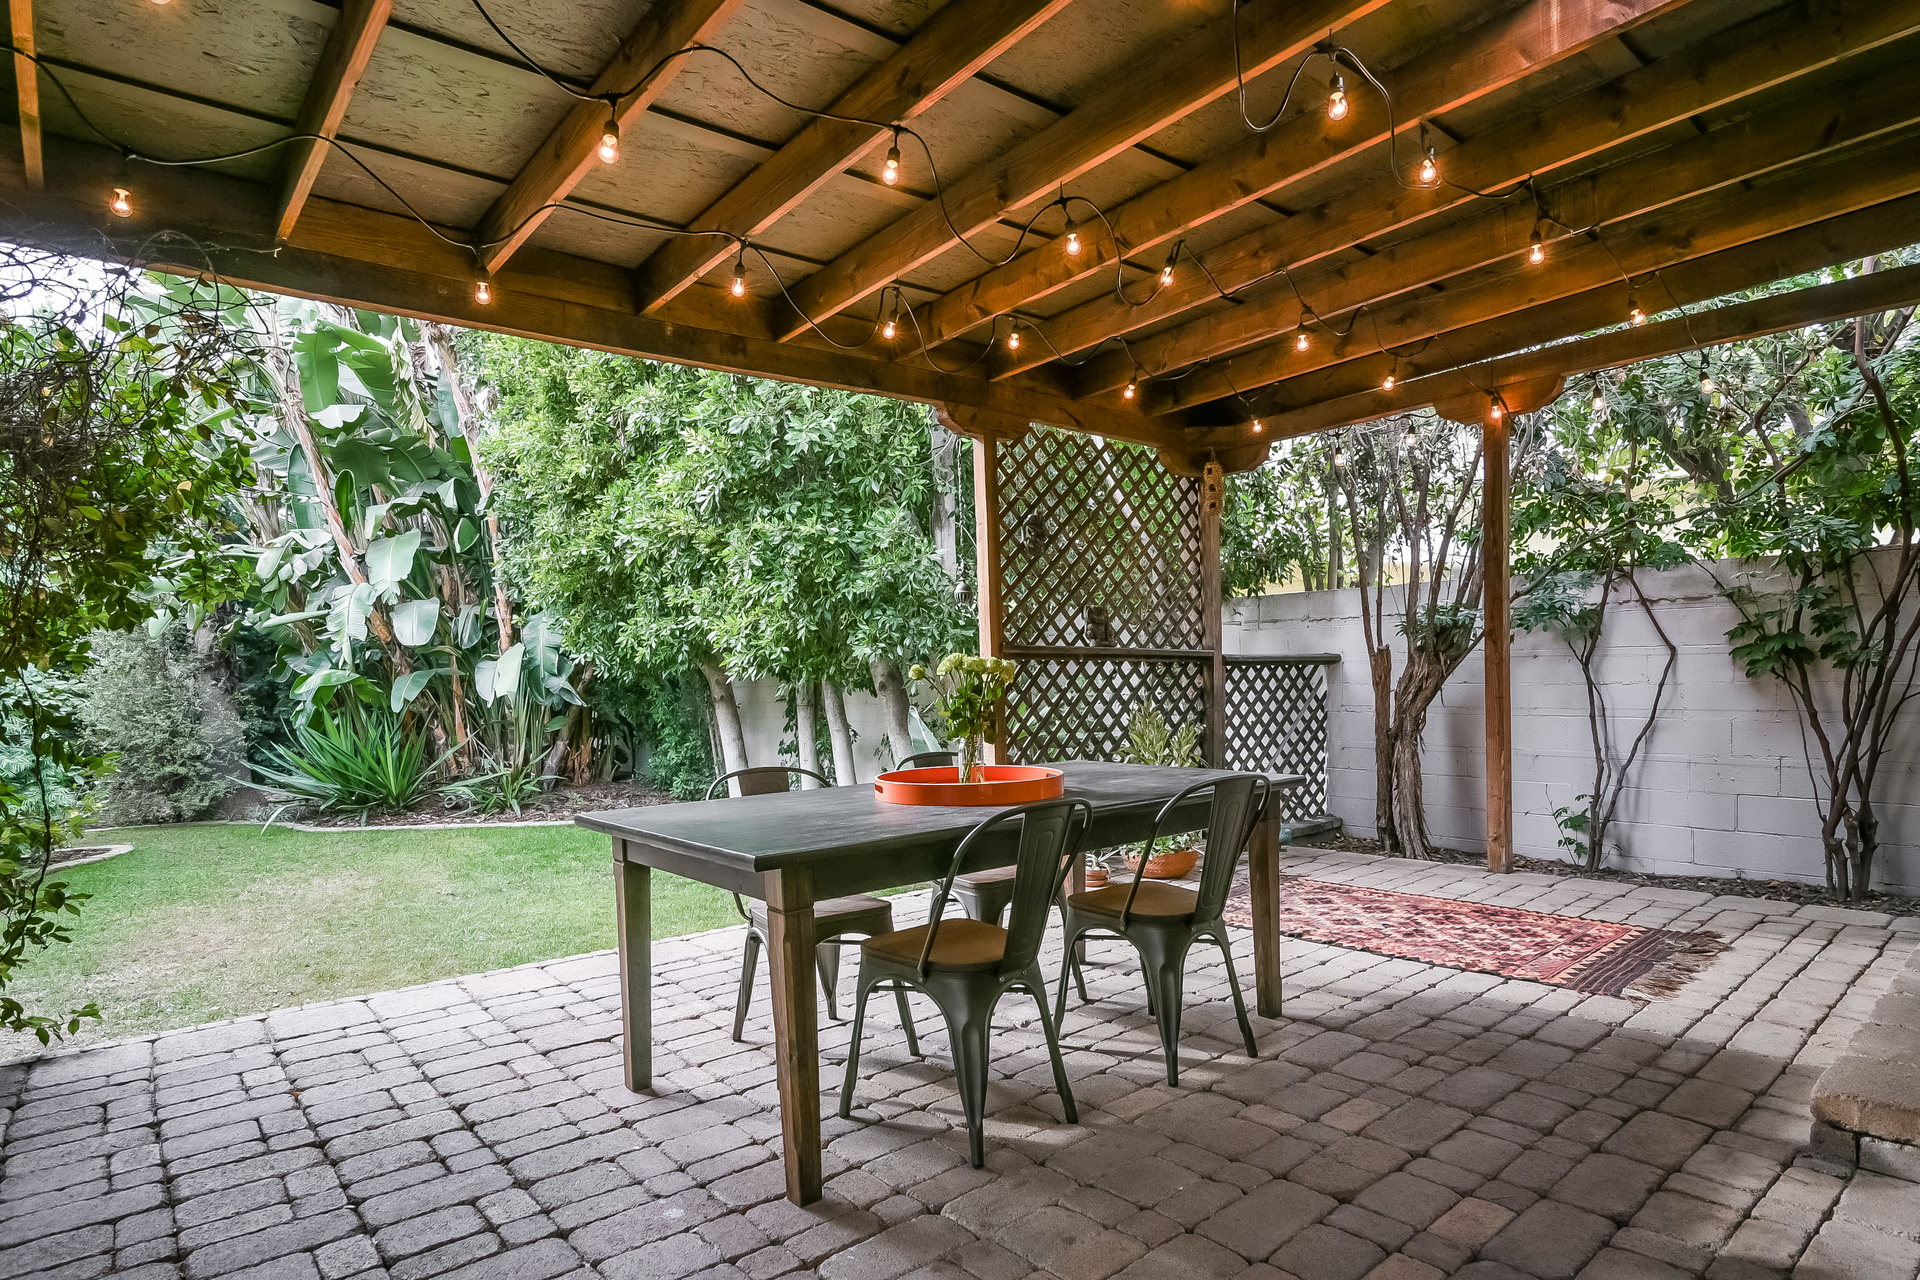 030-photo-covered-patio-6554499.jpg